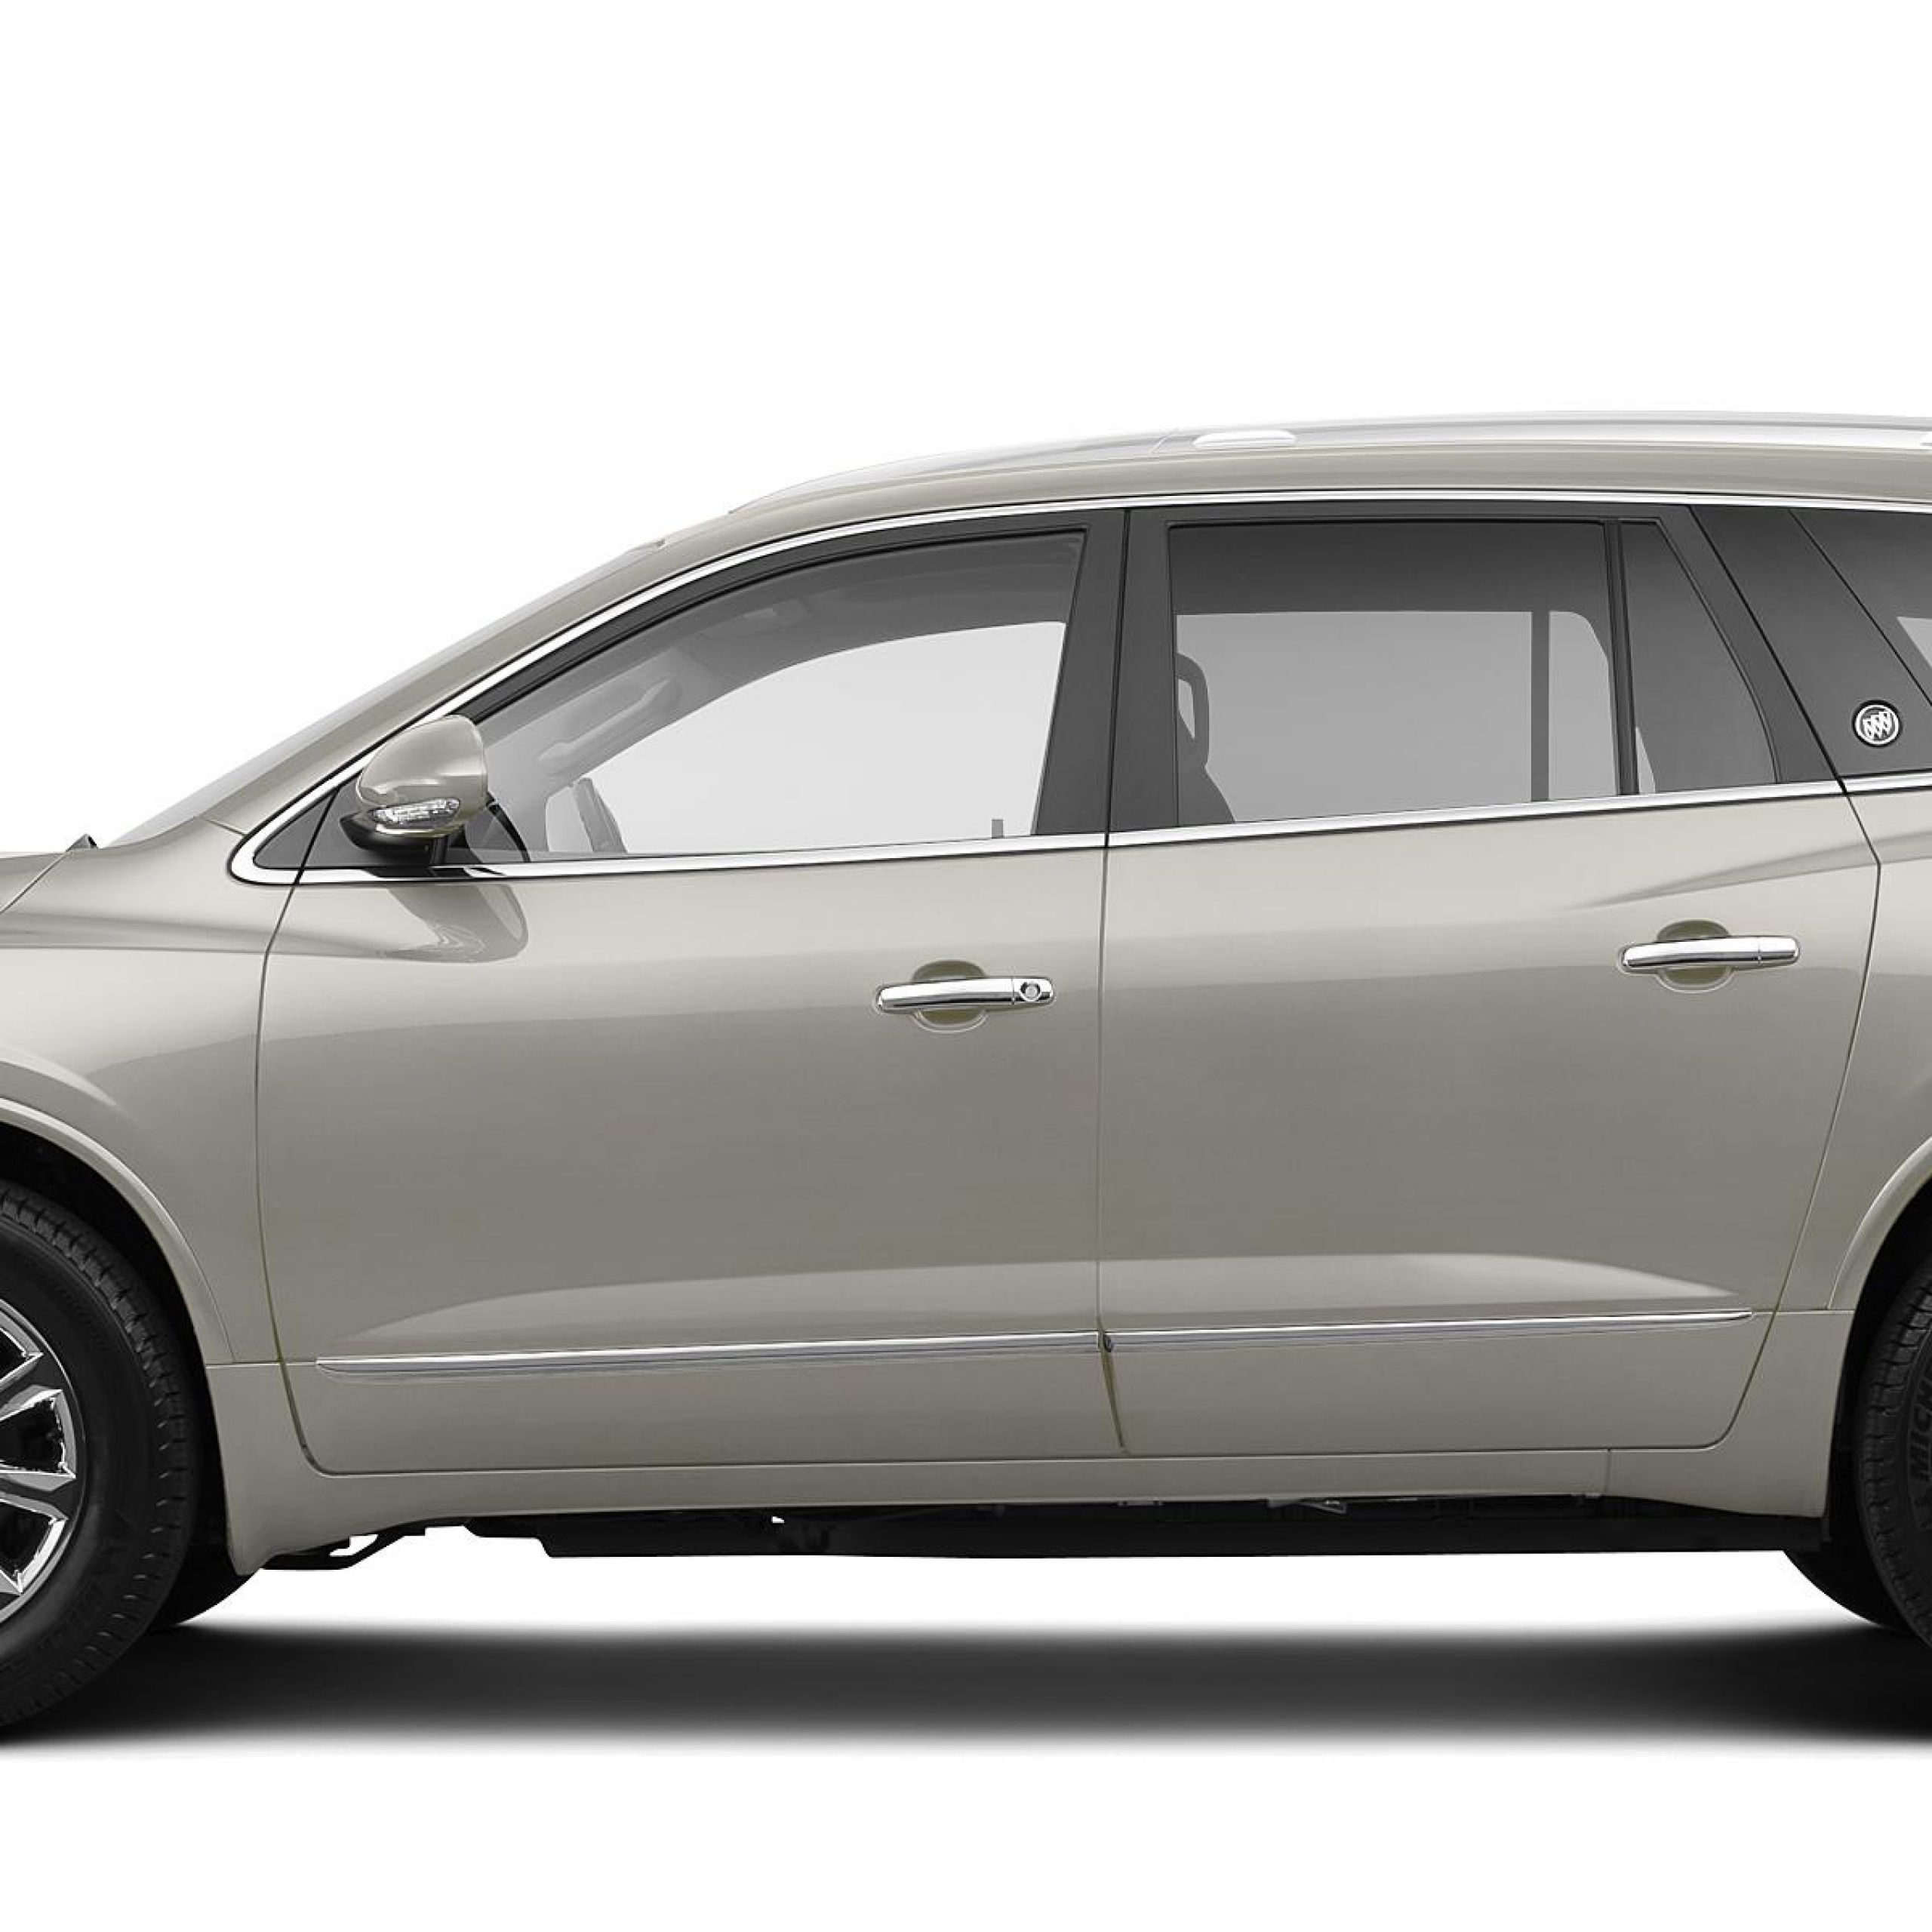 2013 Buick Enclave New 2014 Buick Enclave Leather 4dr Crossover Research Groovecar